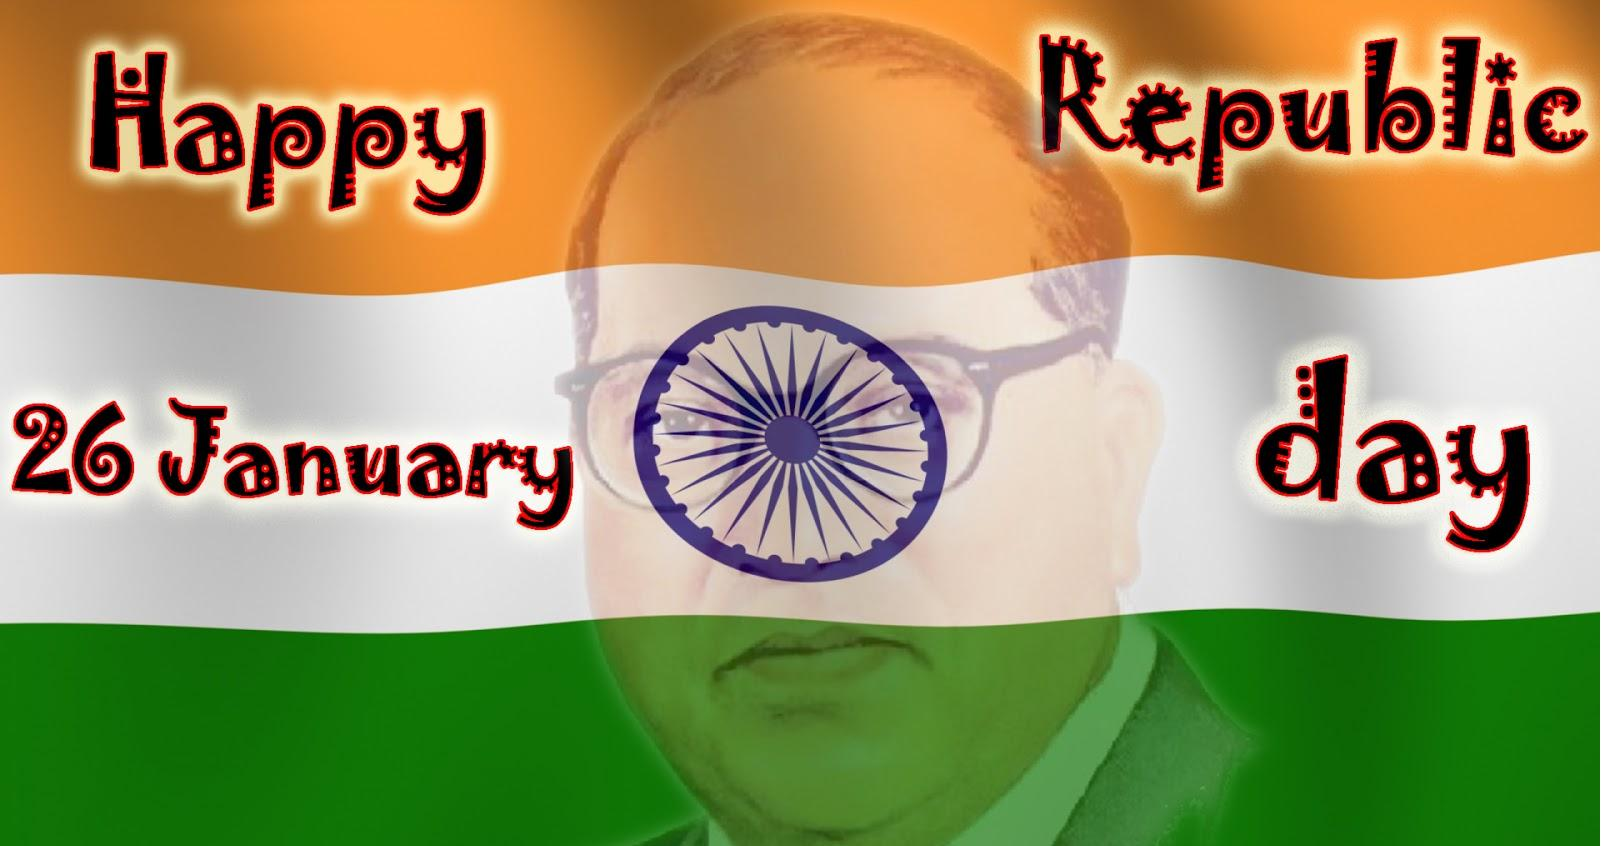 26th january is india's